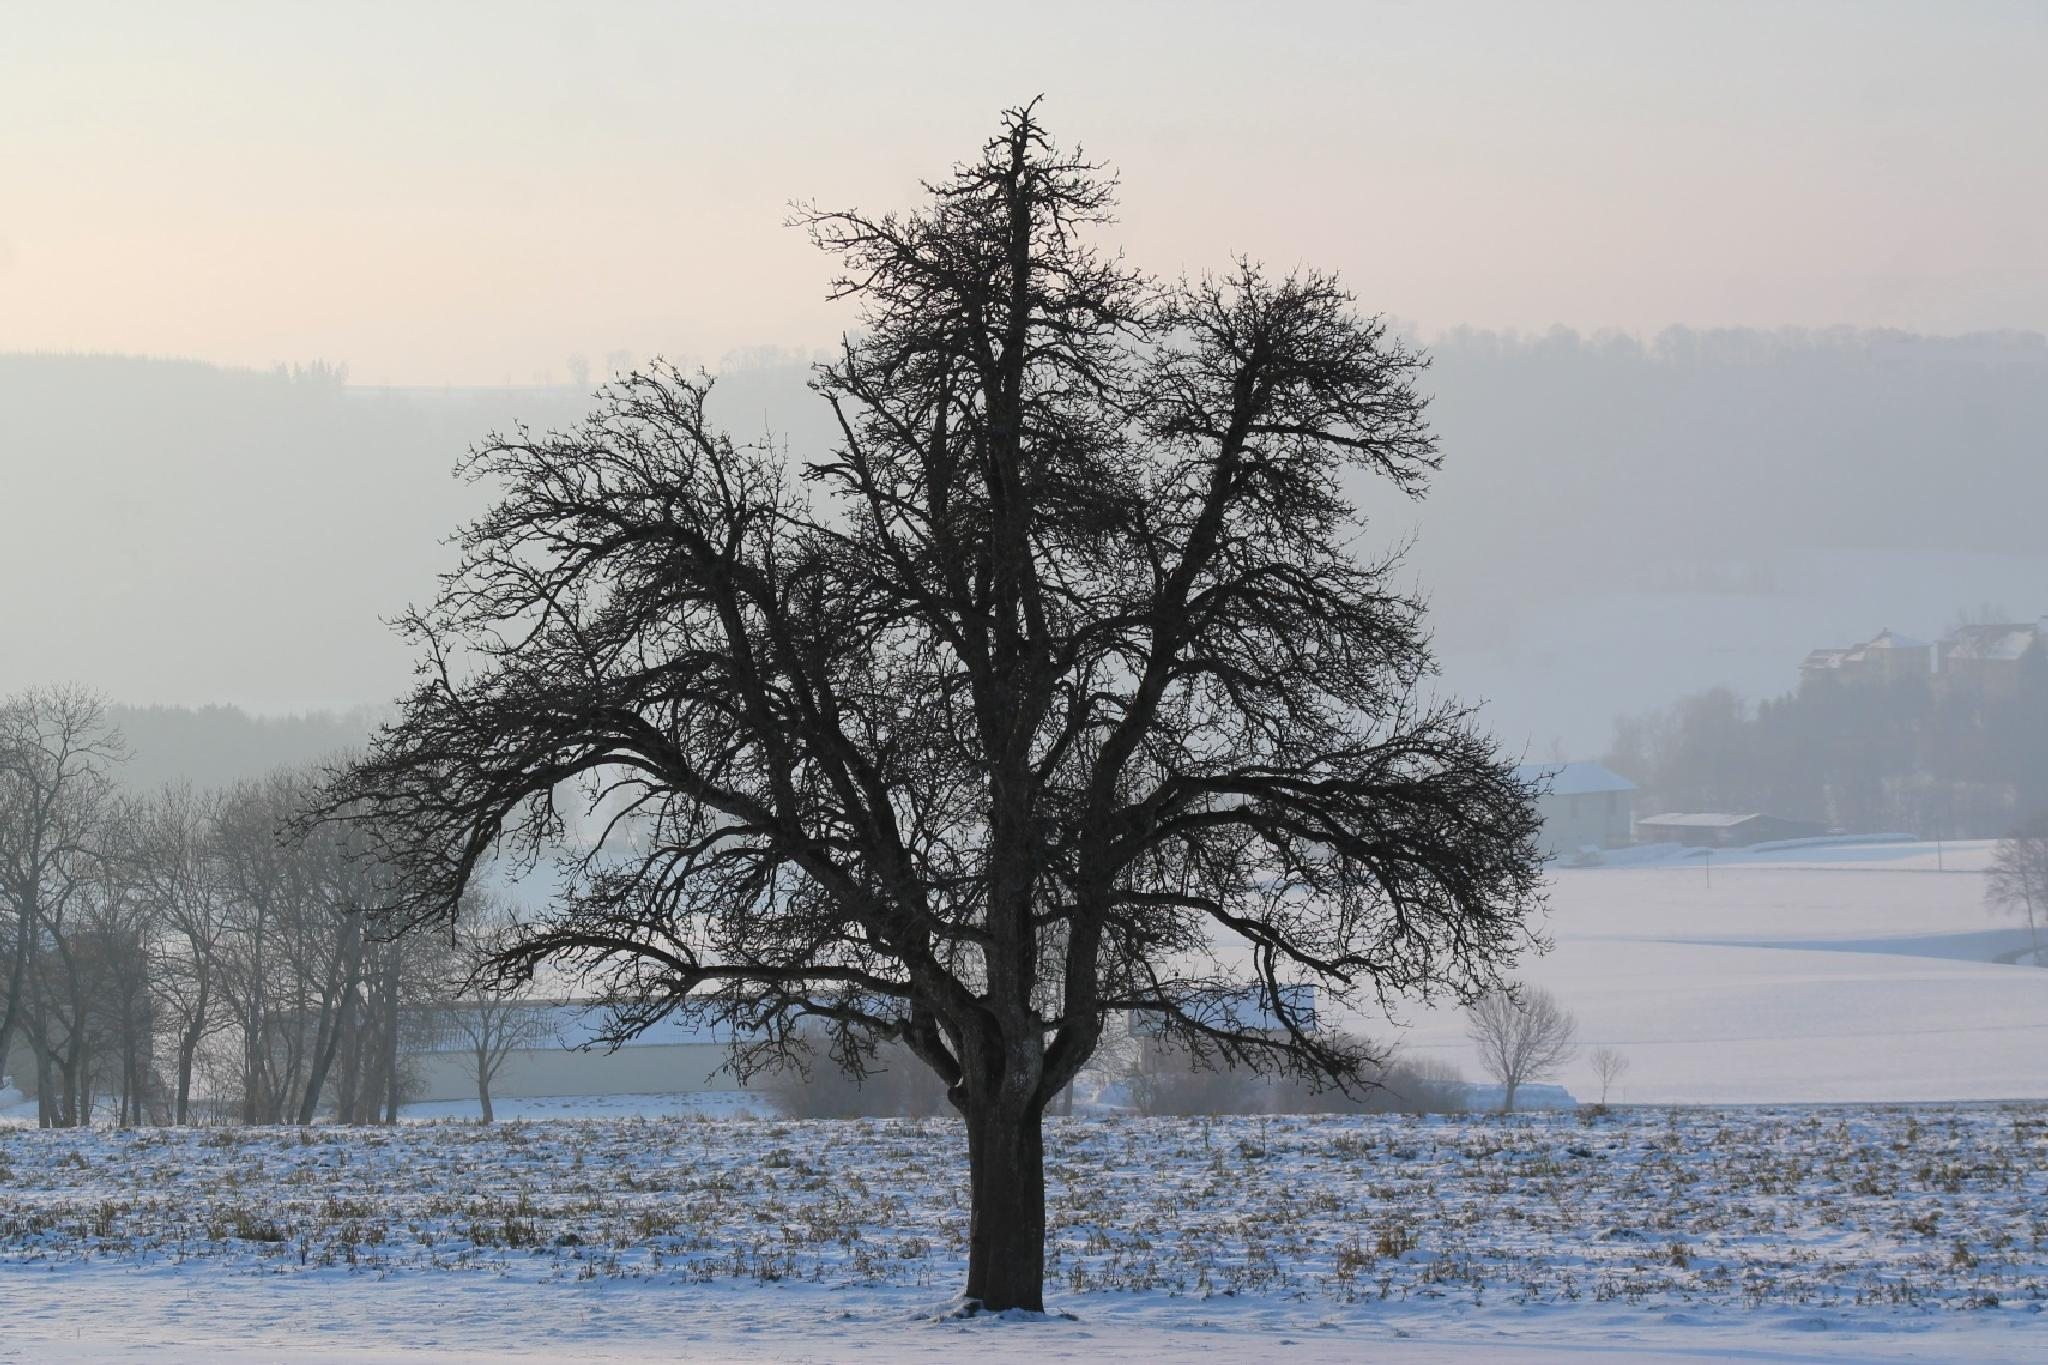 Bare tree! We dress for warmth and nature undresses! by Andre RAMSEYER